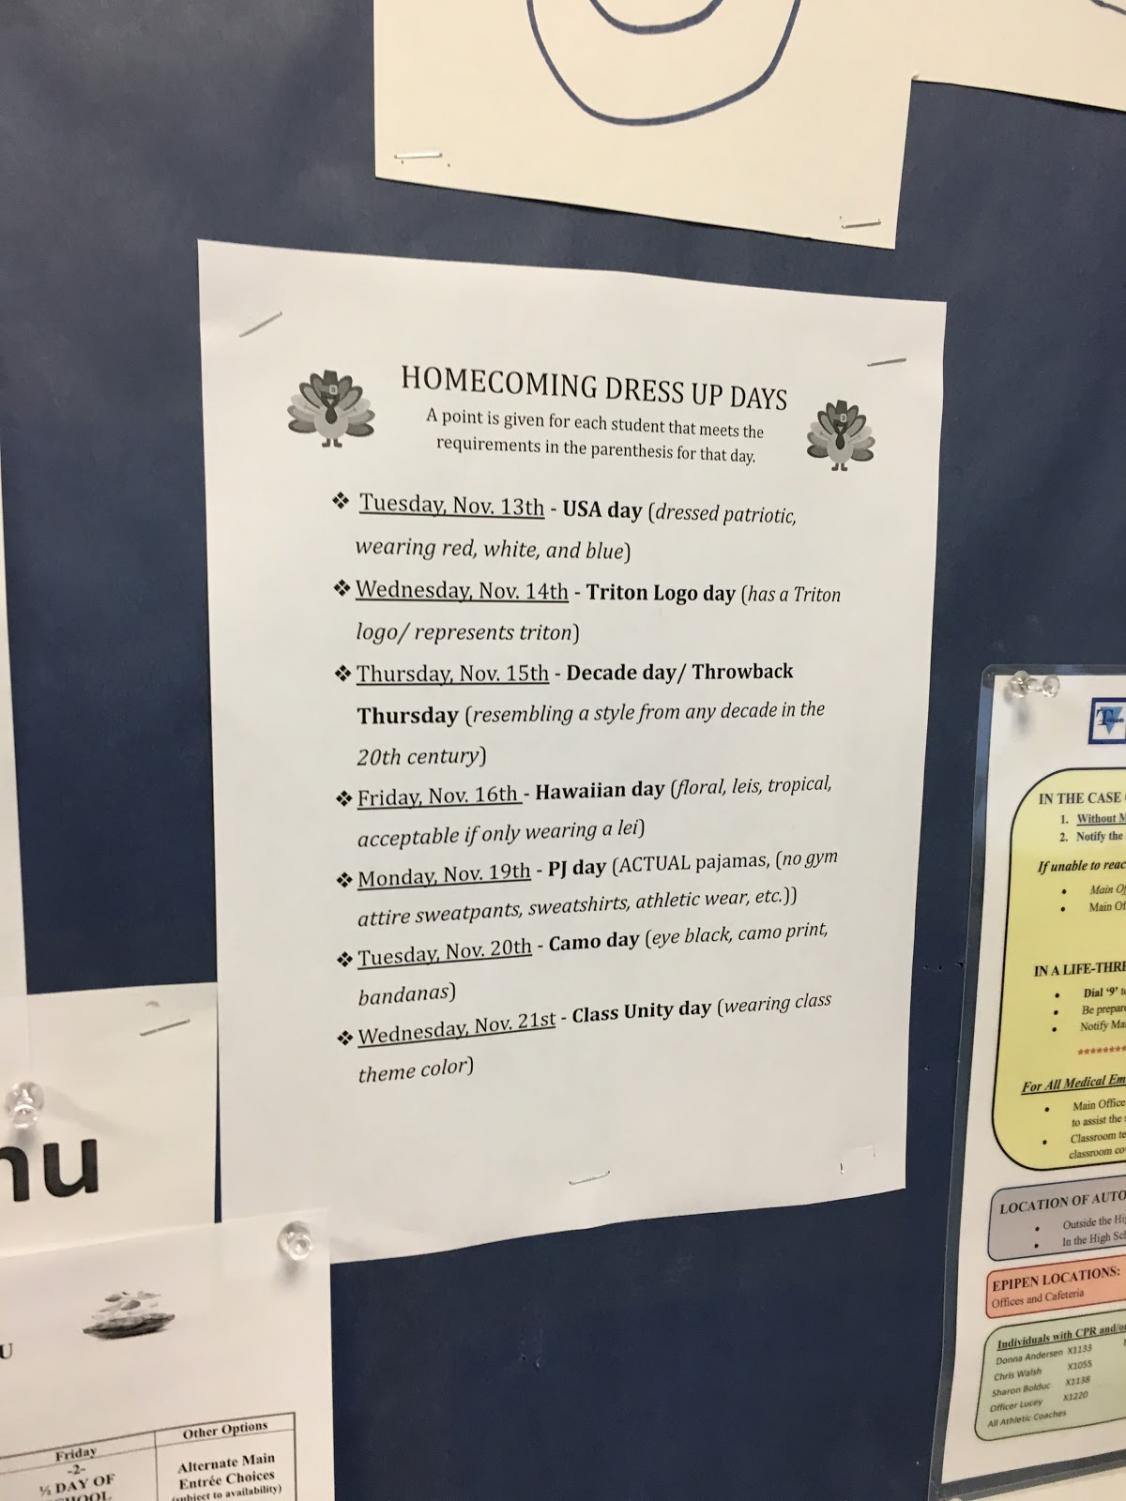 A list of the dress-up days for Homecoming